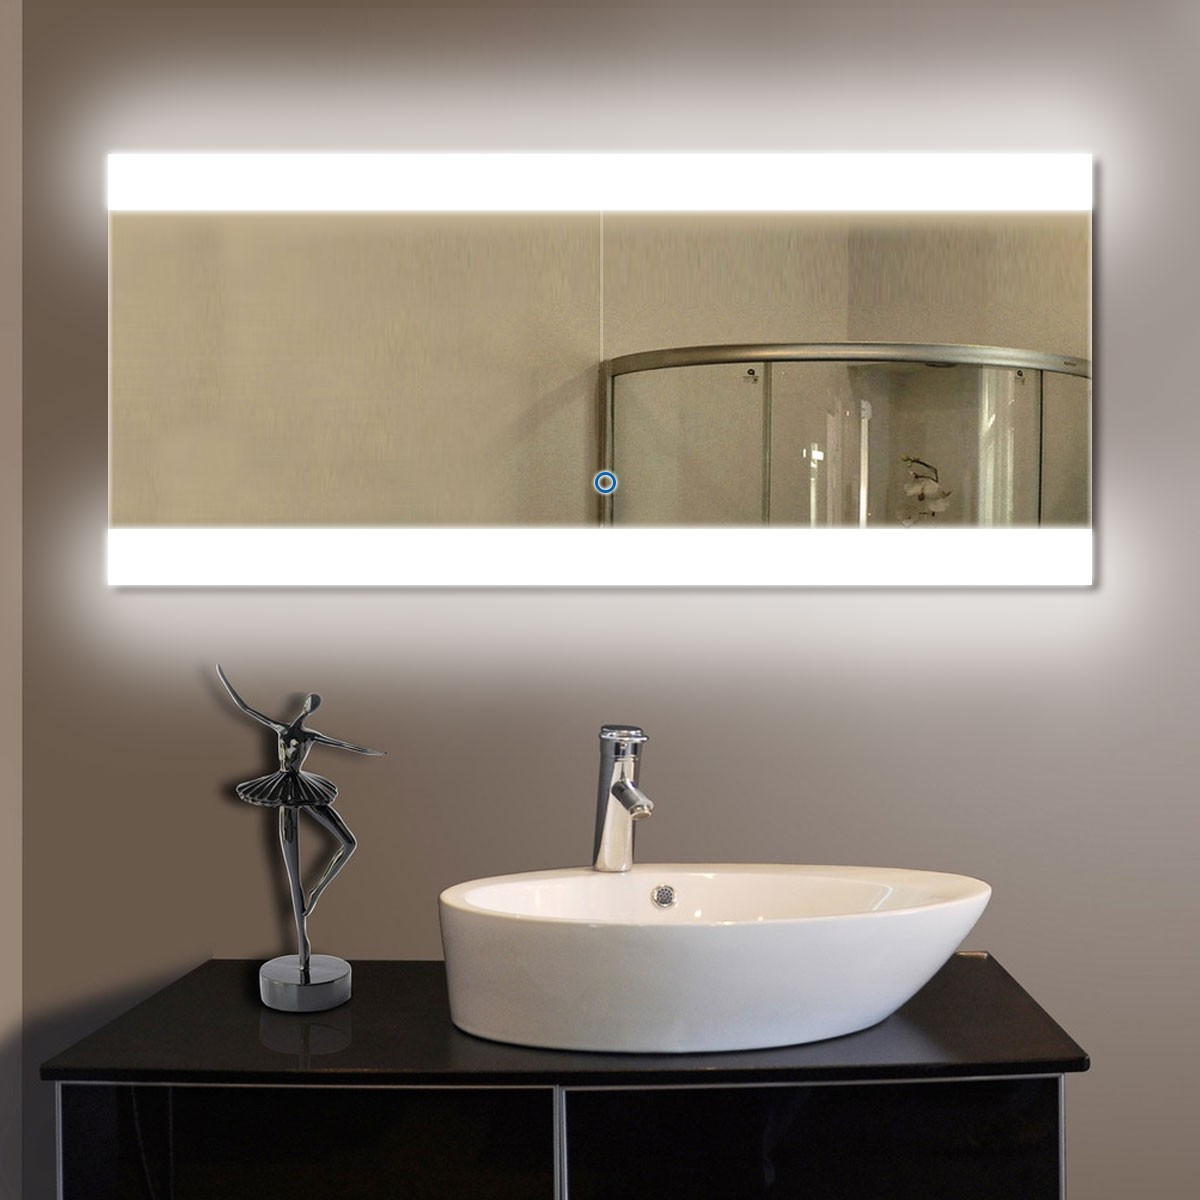 kitchen and bath showroom 4 hole faucet 80 x 36 in horizontal led bathroom silvered mirror with ...